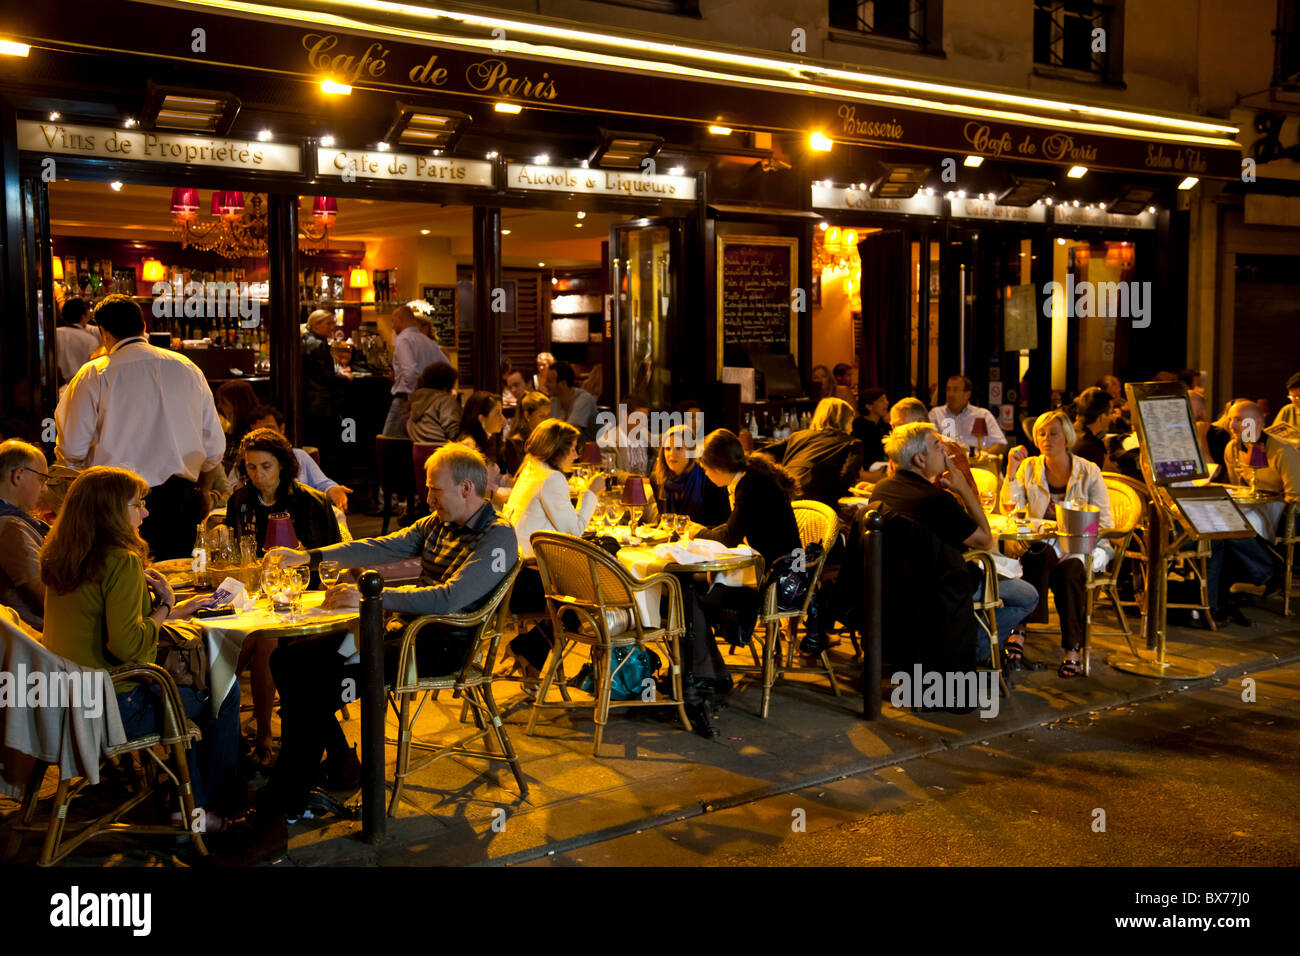 People dining at night, Left Bank, Paris, France, Europe - Stock Image